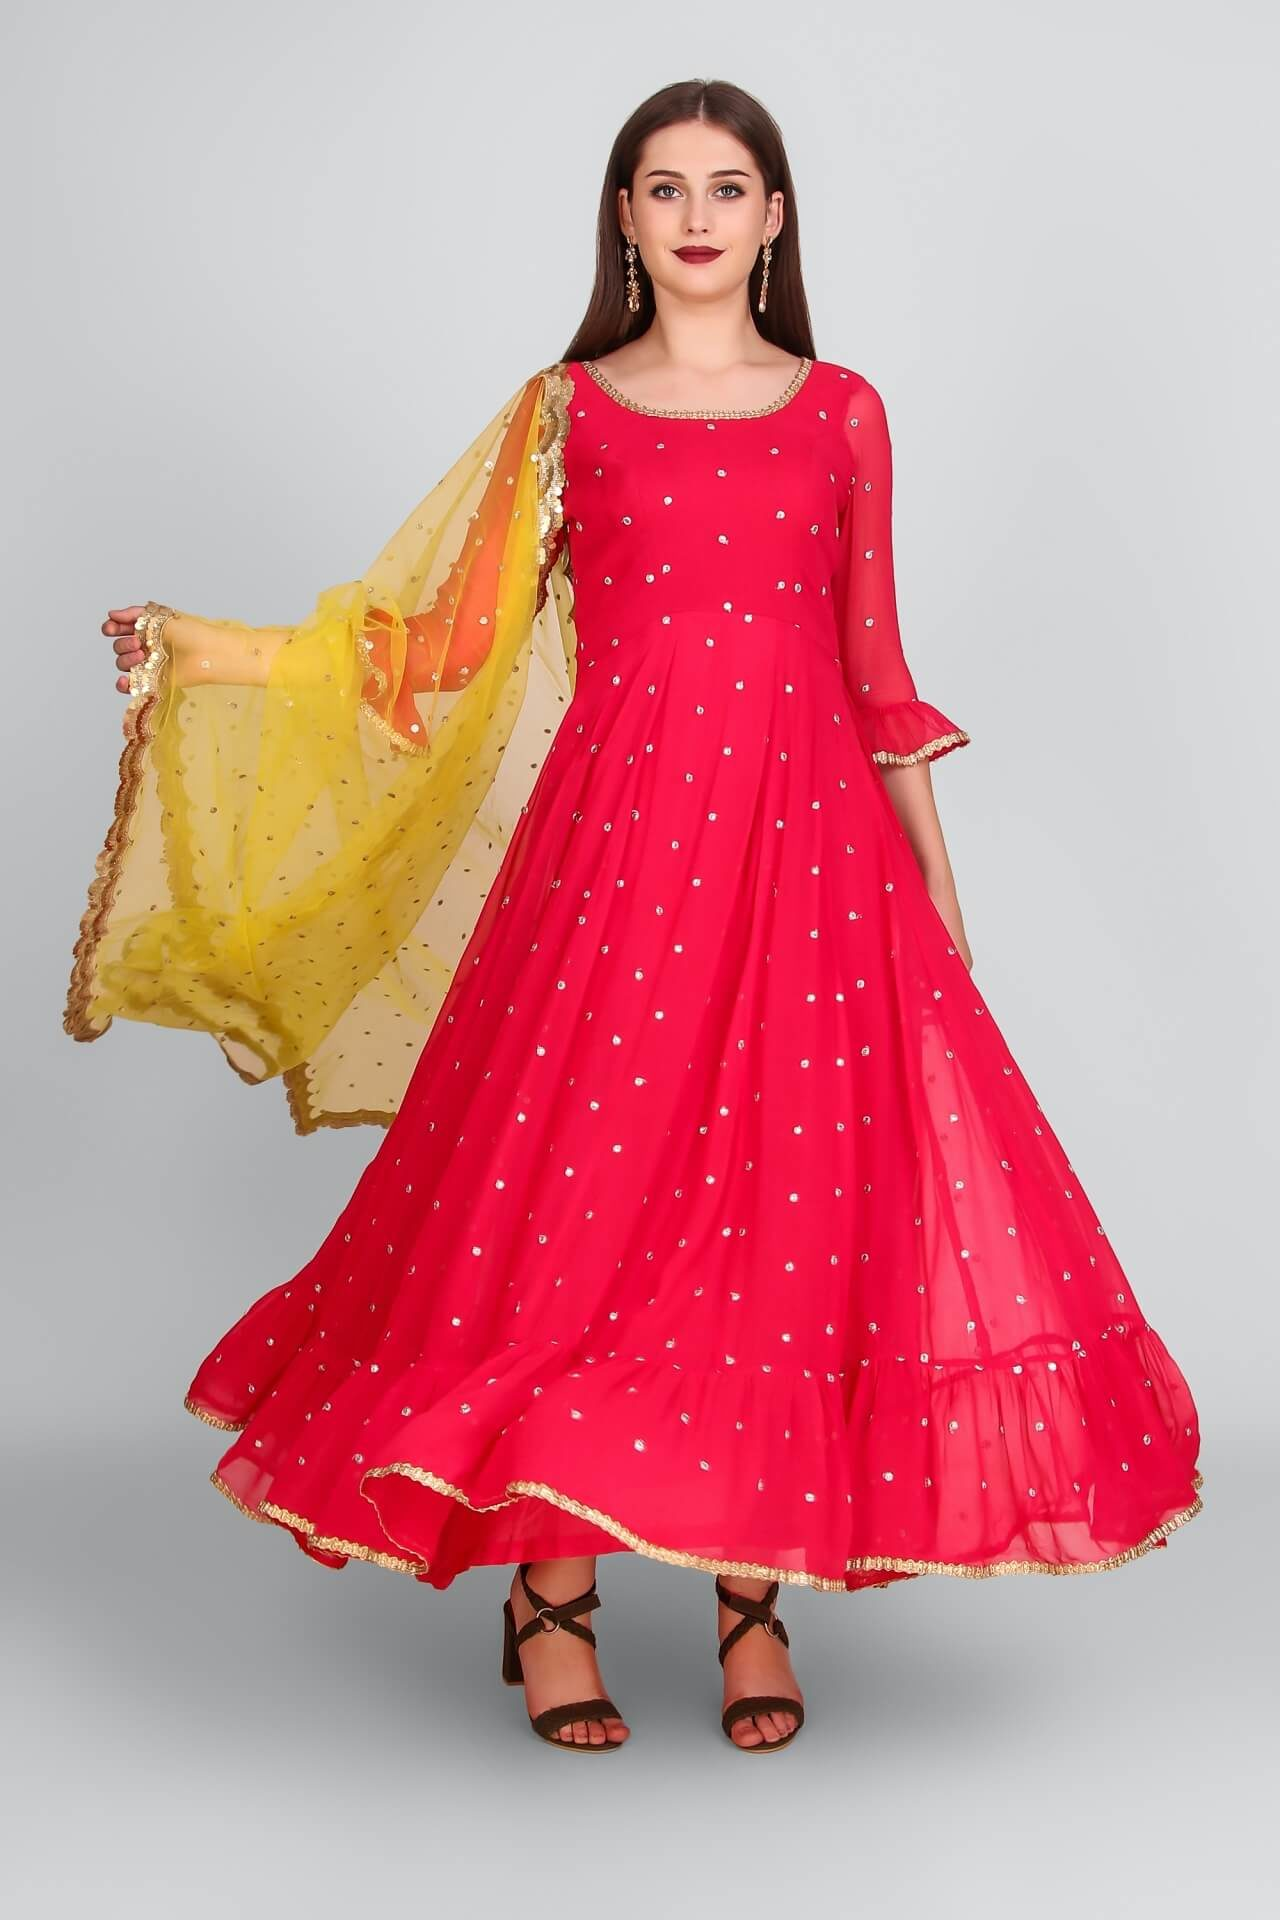 Hot Pink Mukaish Anarkali With Yellow Sequins Dupatta